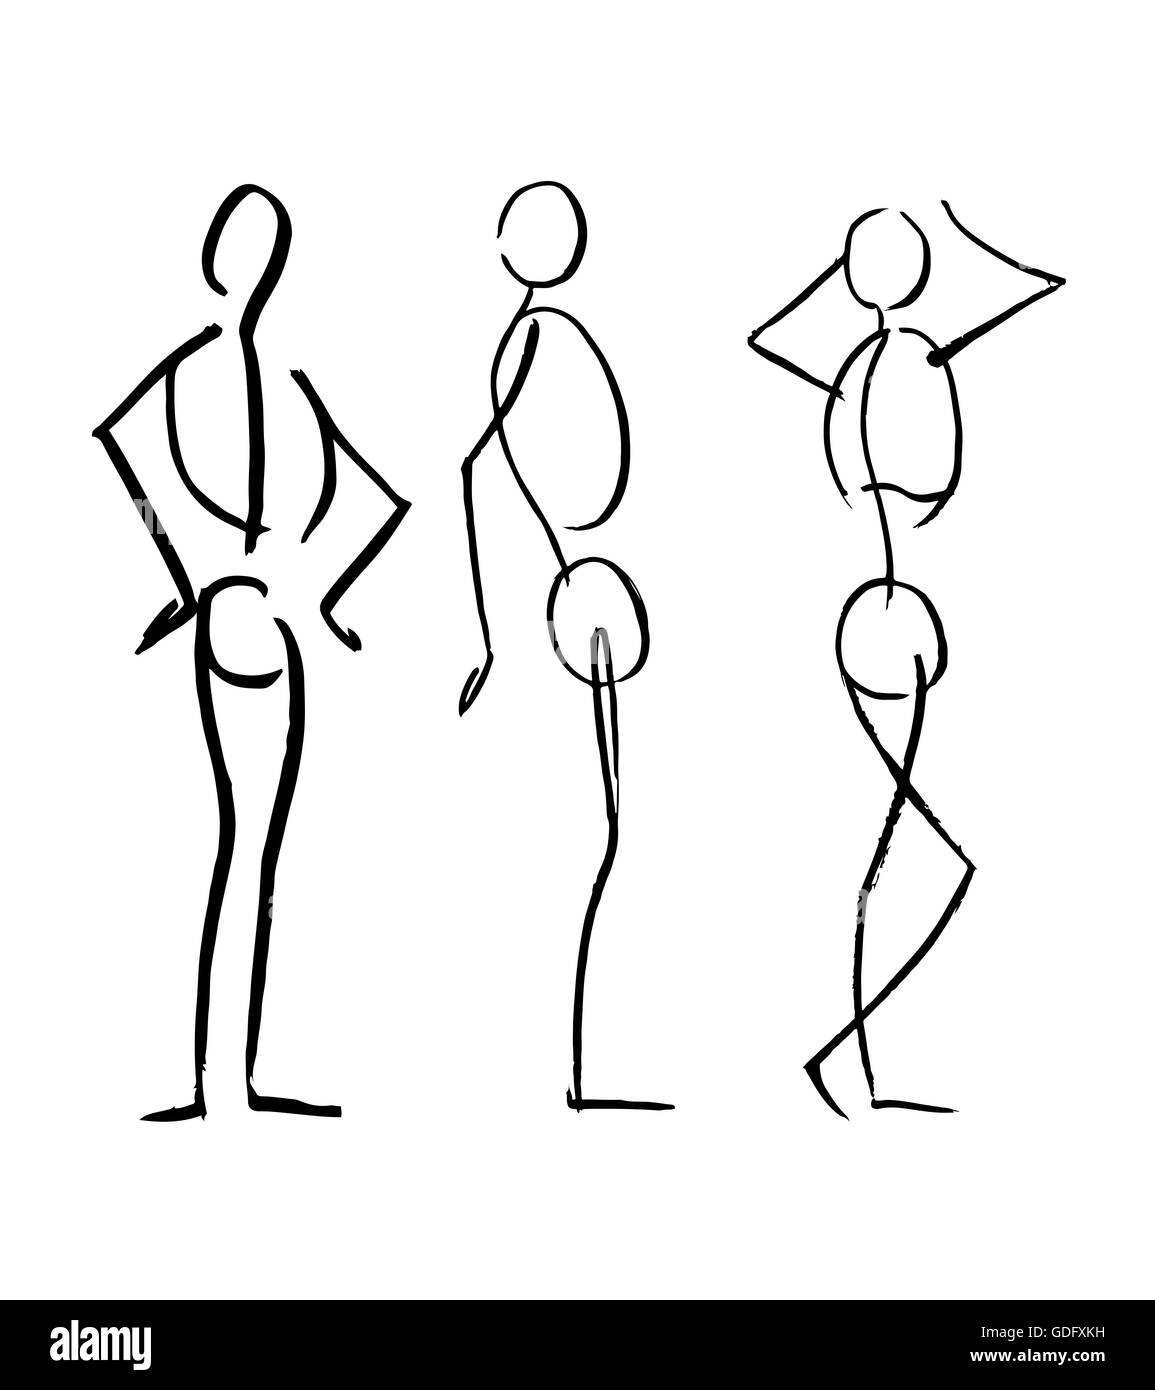 Hand Drawn Illustration Or Drawing Of Different Men Human Body Stock Photo Alamy